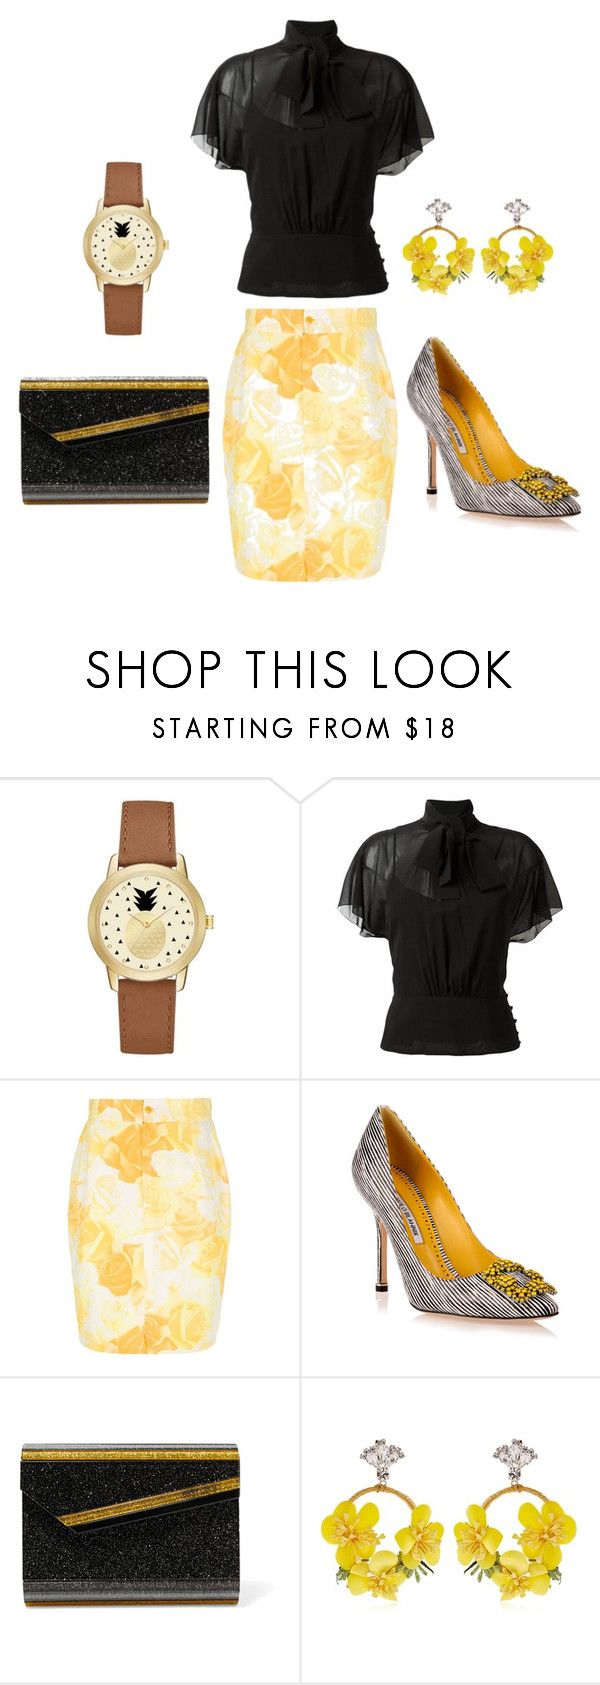 """""""Untitled #411"""" by rubysparks90 ❤ liked on Polyvore featuring Jessica Carlyle, RED Valentino, Versace, Manolo Blahnik, Jimmy Choo and VANINA"""